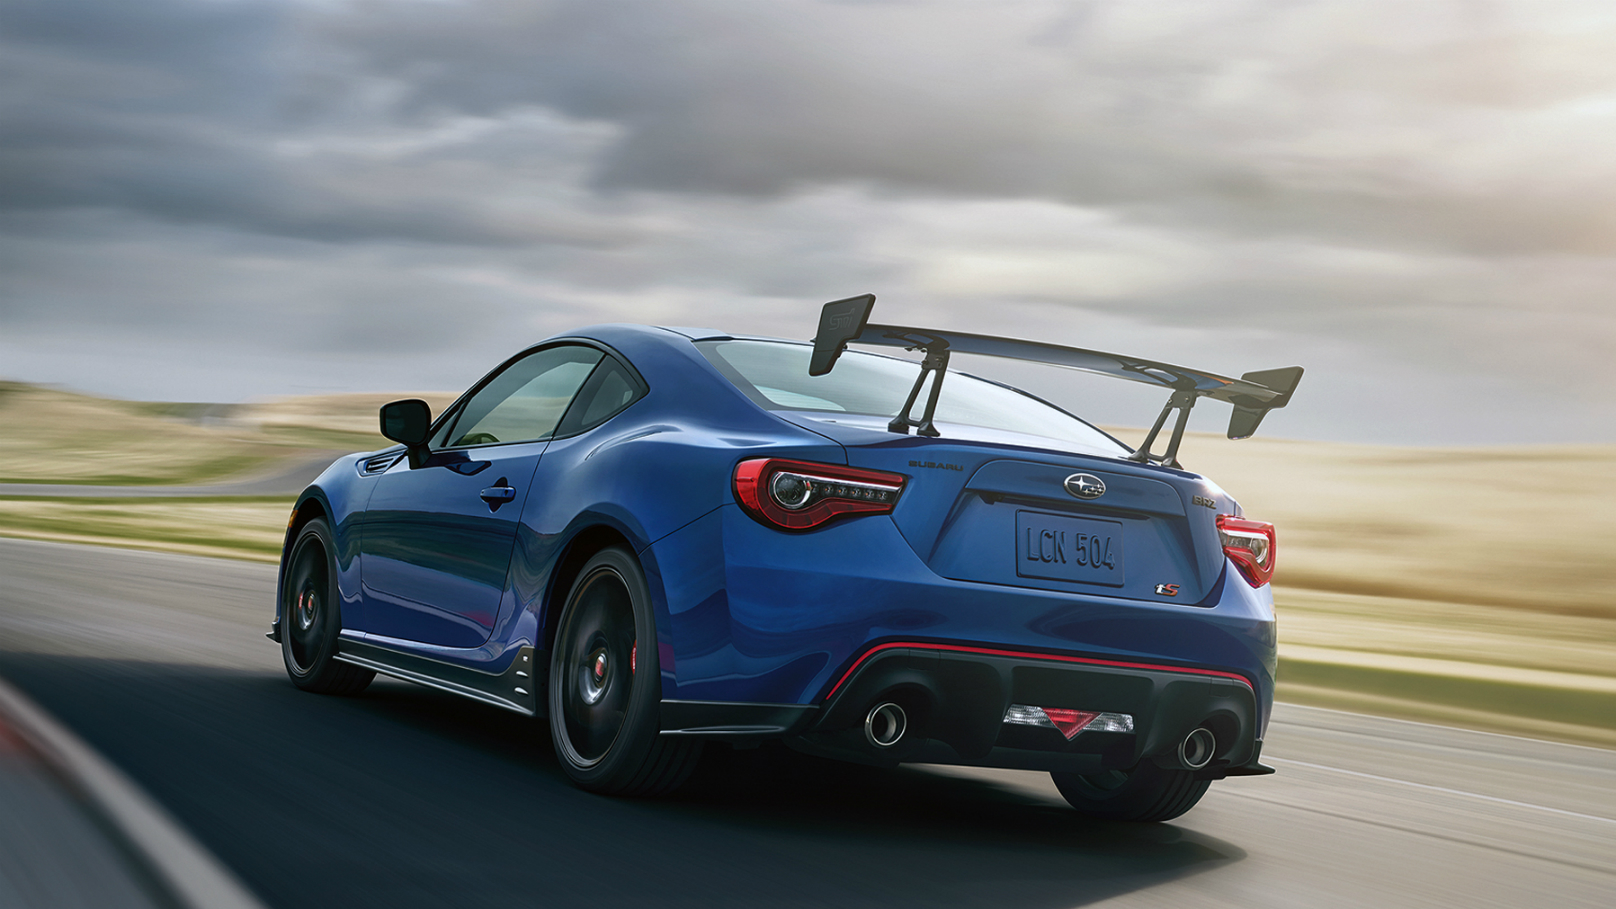 2018 Subaru WRX STI Type RA and 2018 Subaru BRZ tS